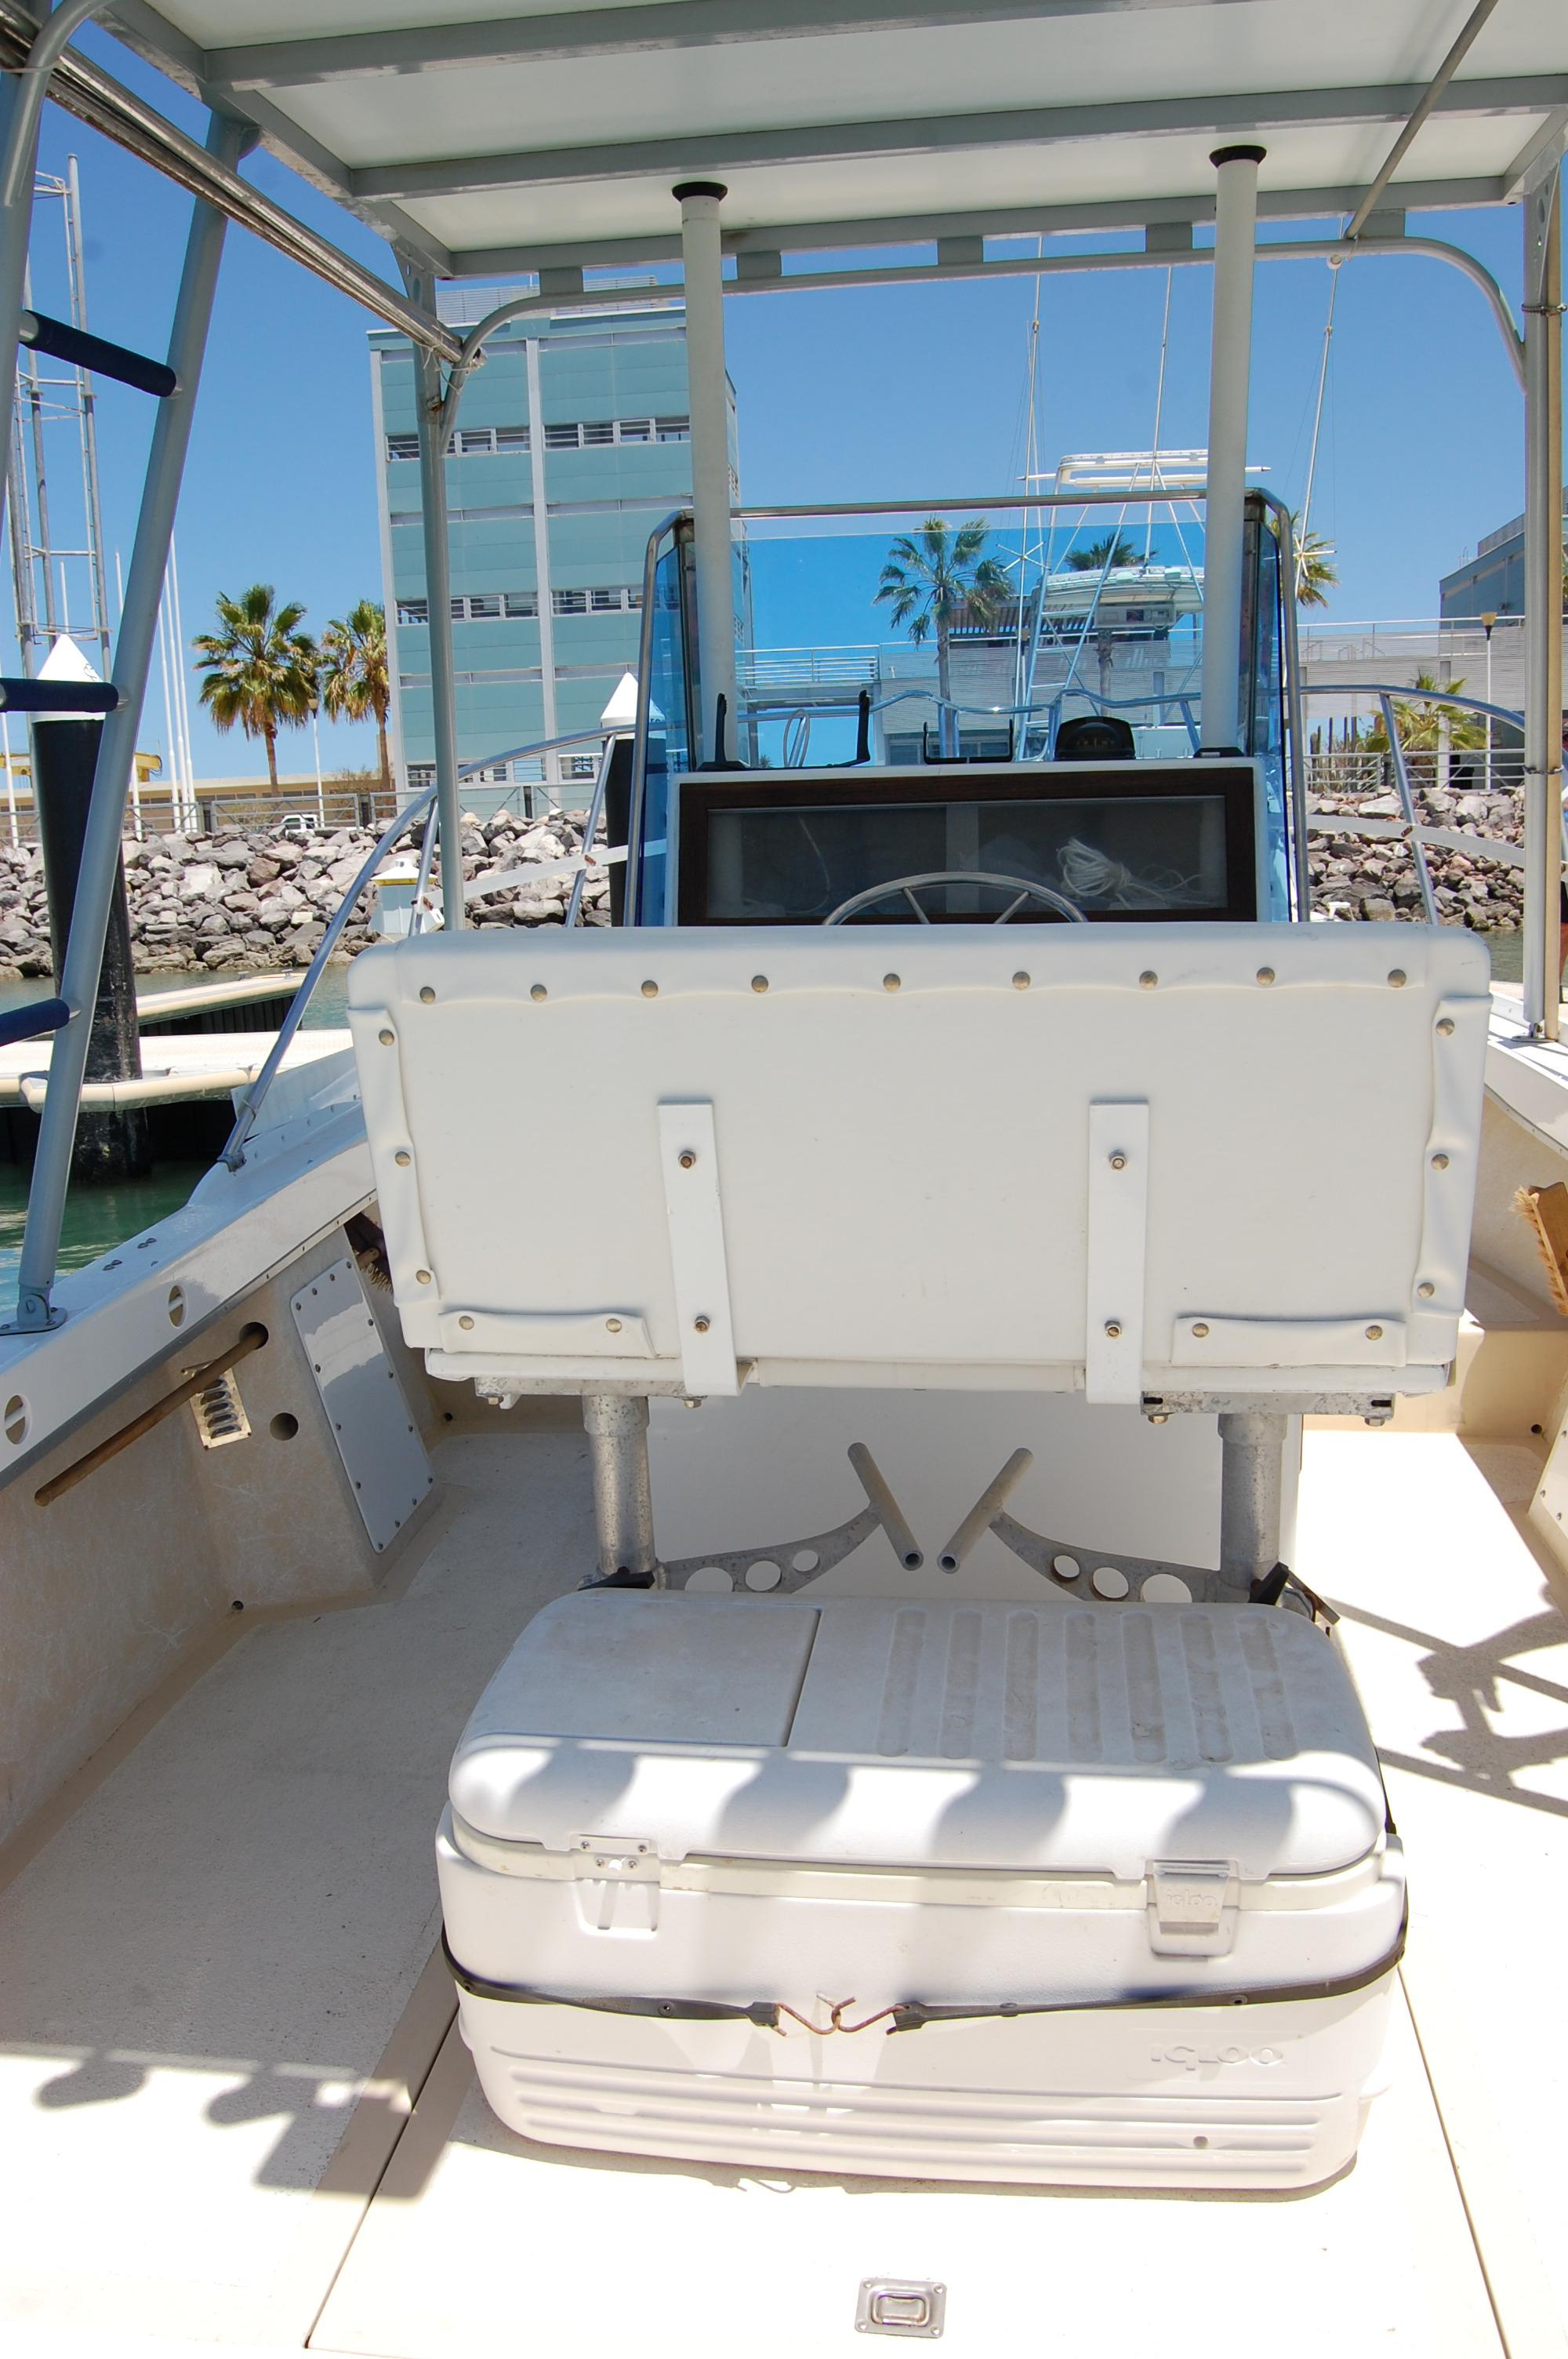 24' Hull Line Center Console Sportfisher+Upper deck